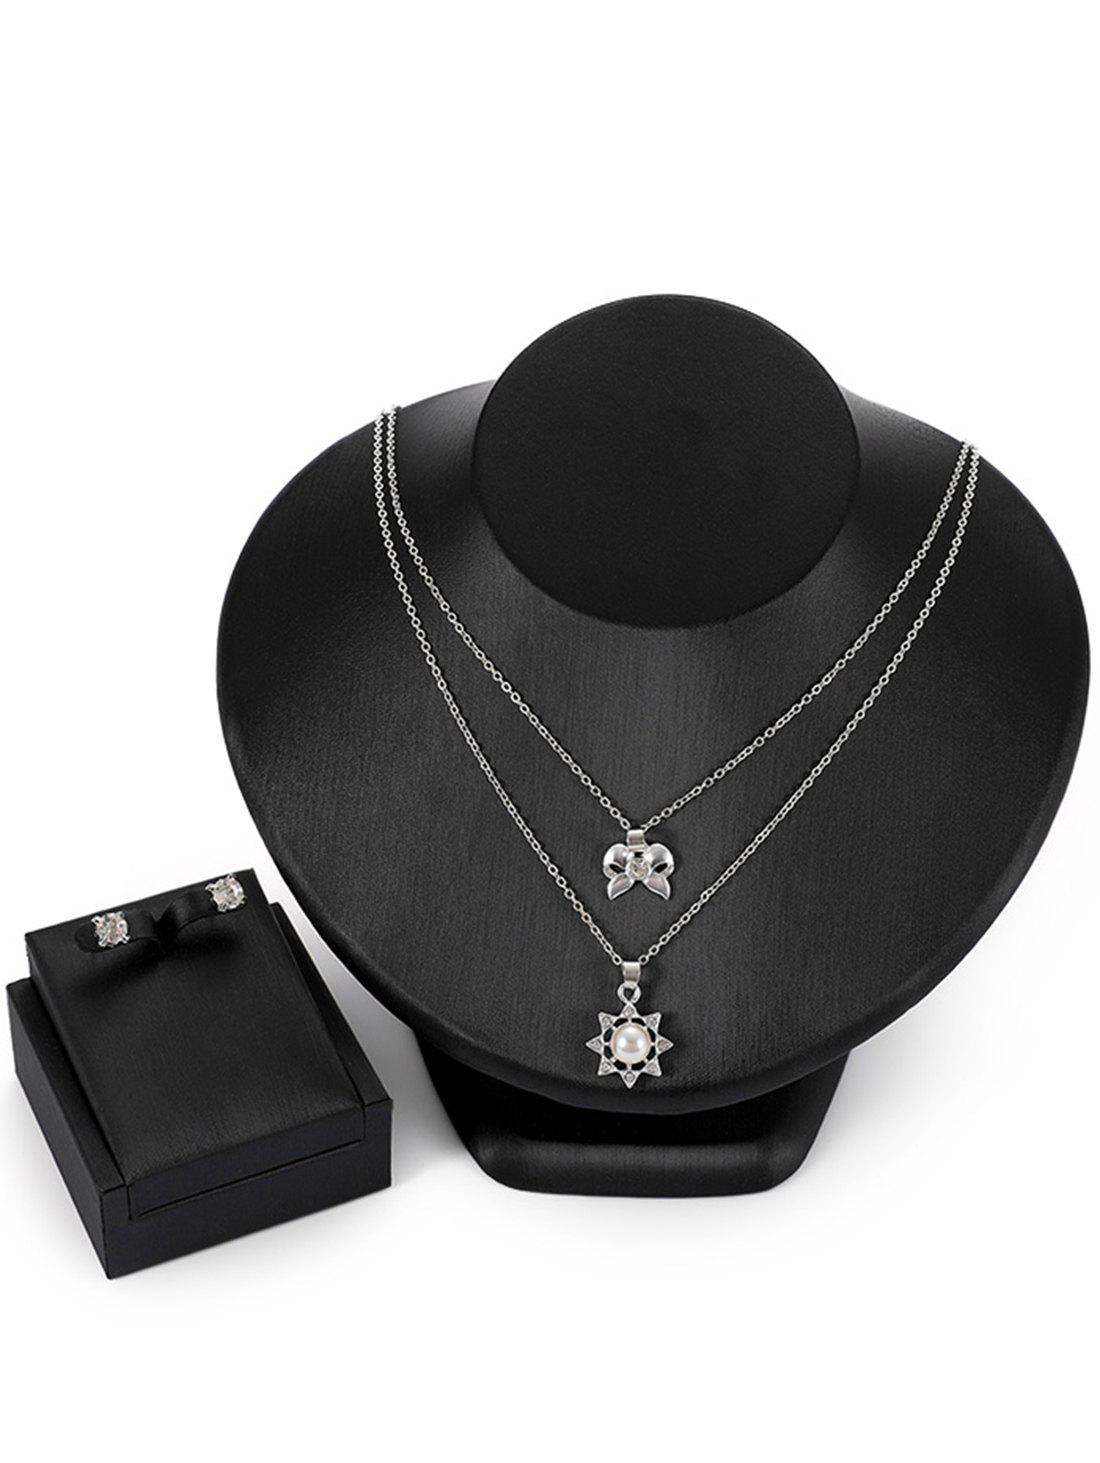 Alloy Layered Bowknot Sun Pendant Necklace Rhinestone Earrings Jewelry Set rhinestone alloy pendant jewelry set